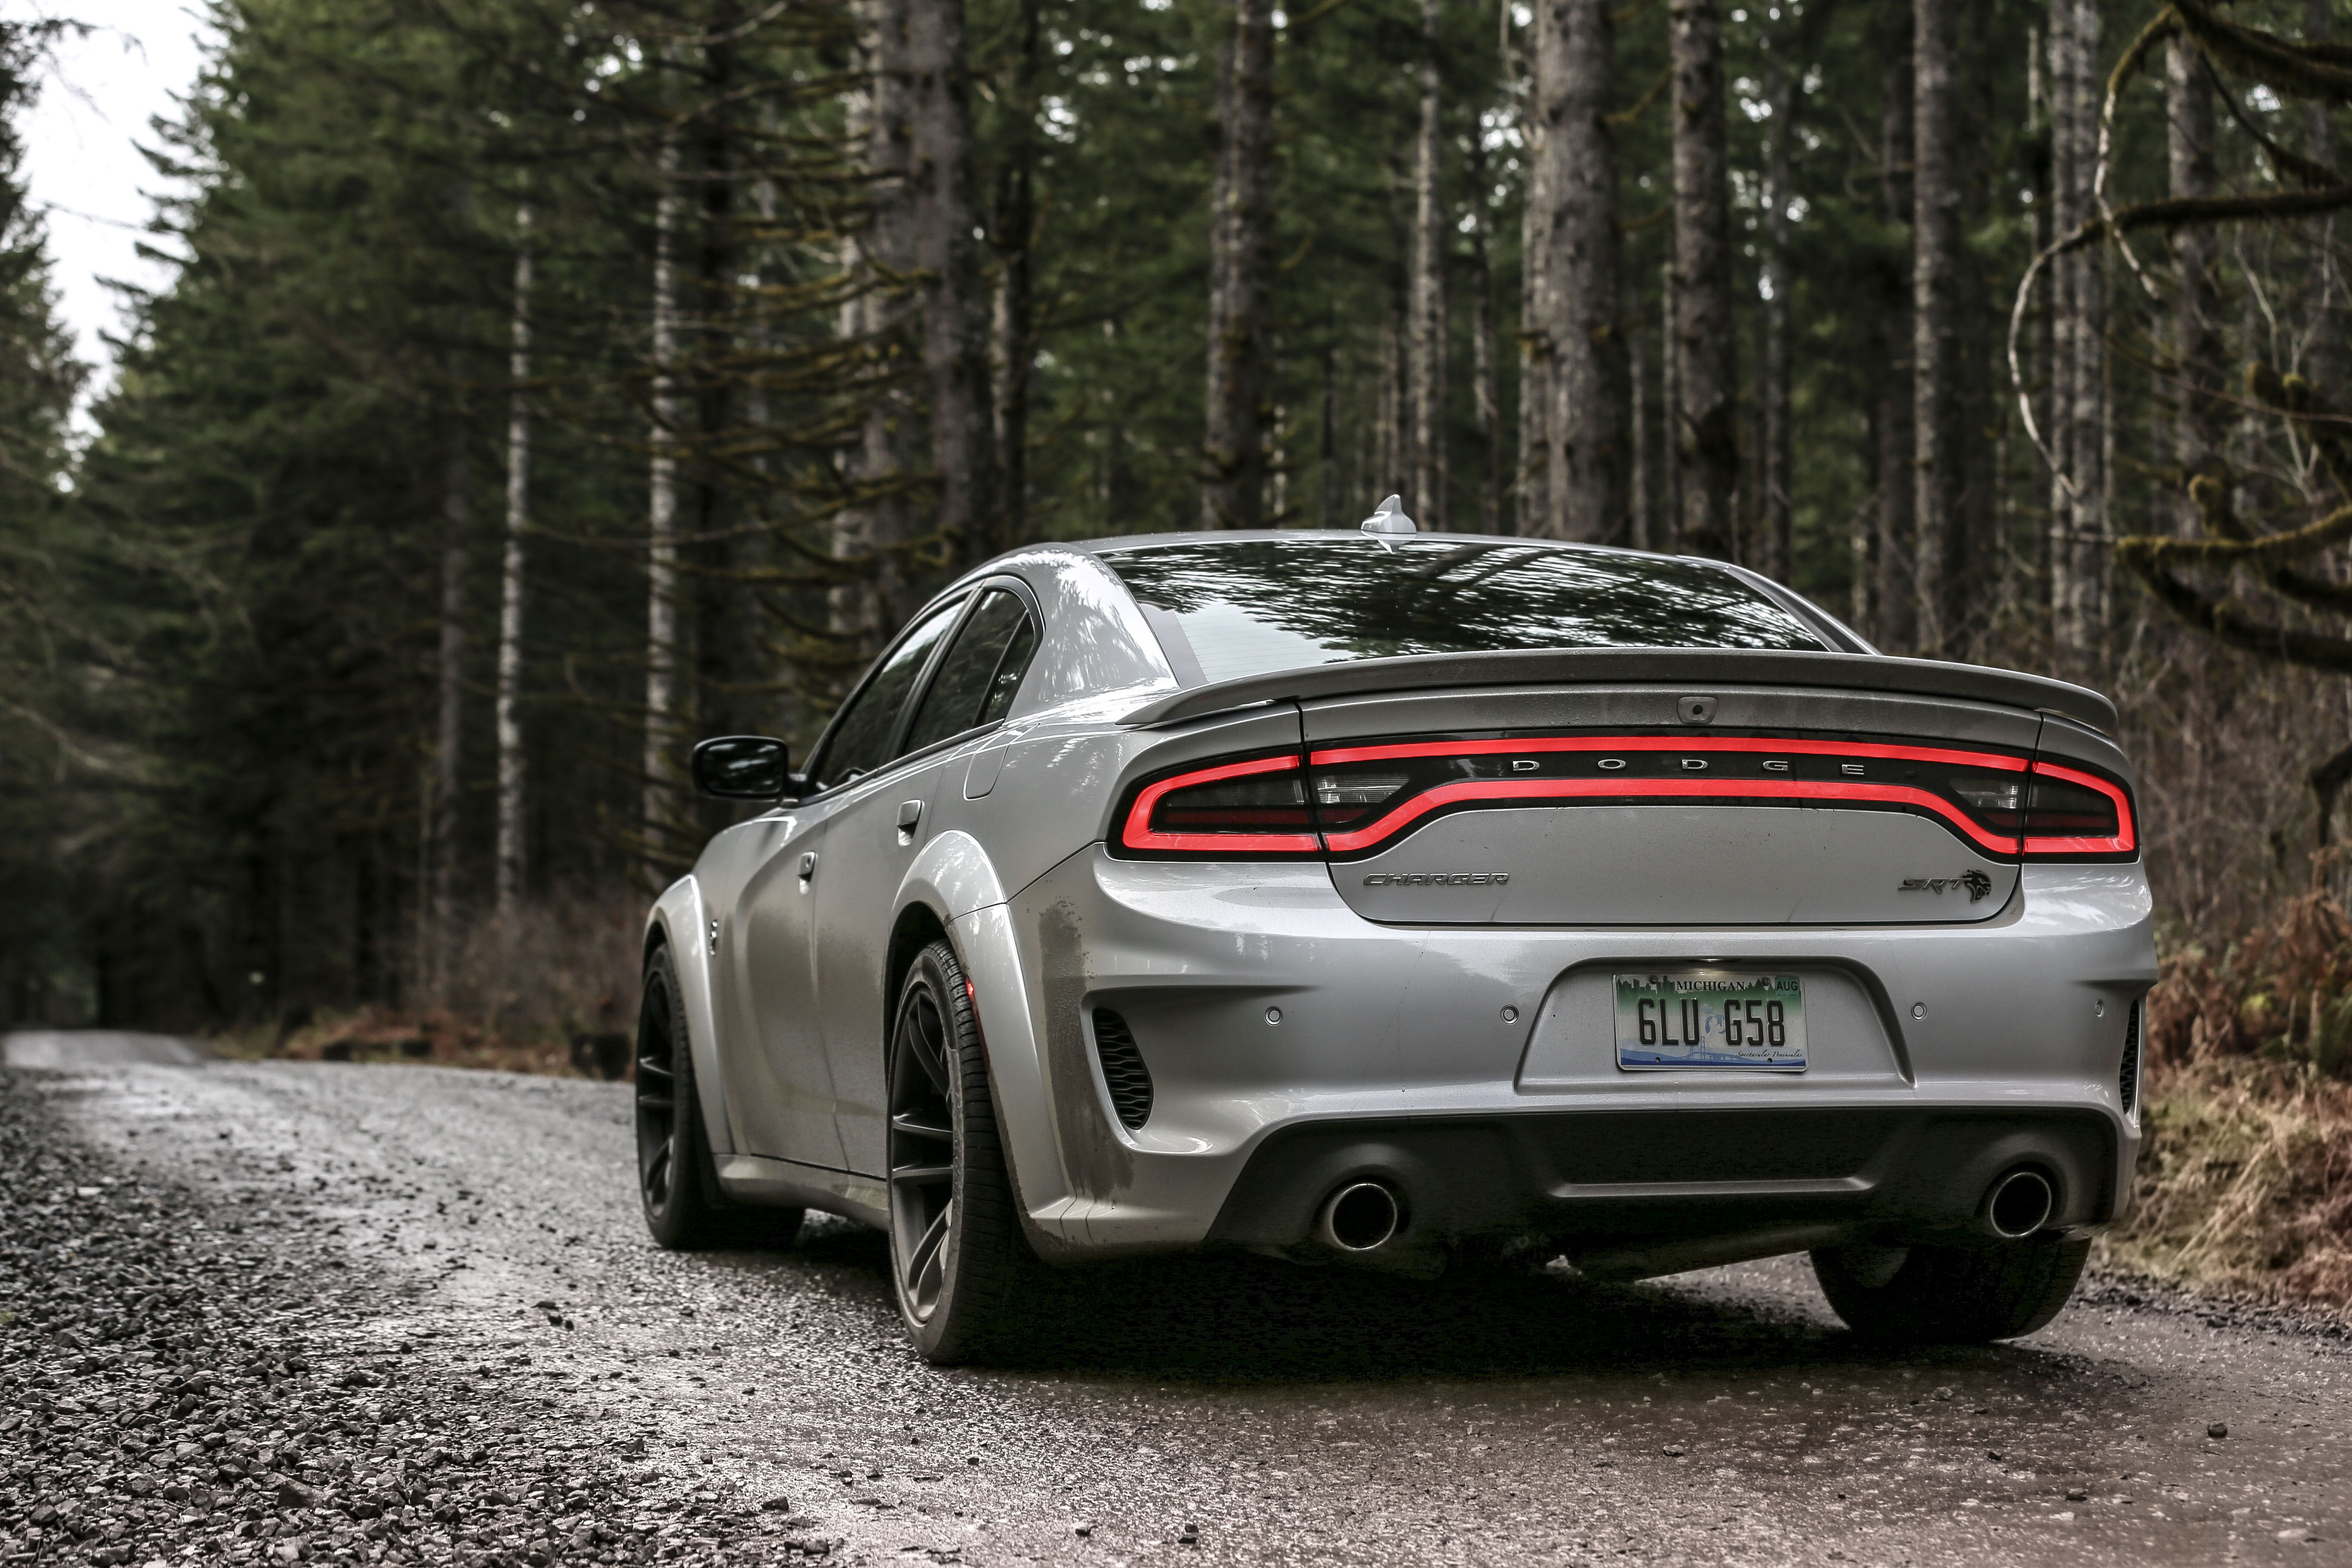 Lost in Oregon Logging Country With a Dodge Charger Hellcat Widebody